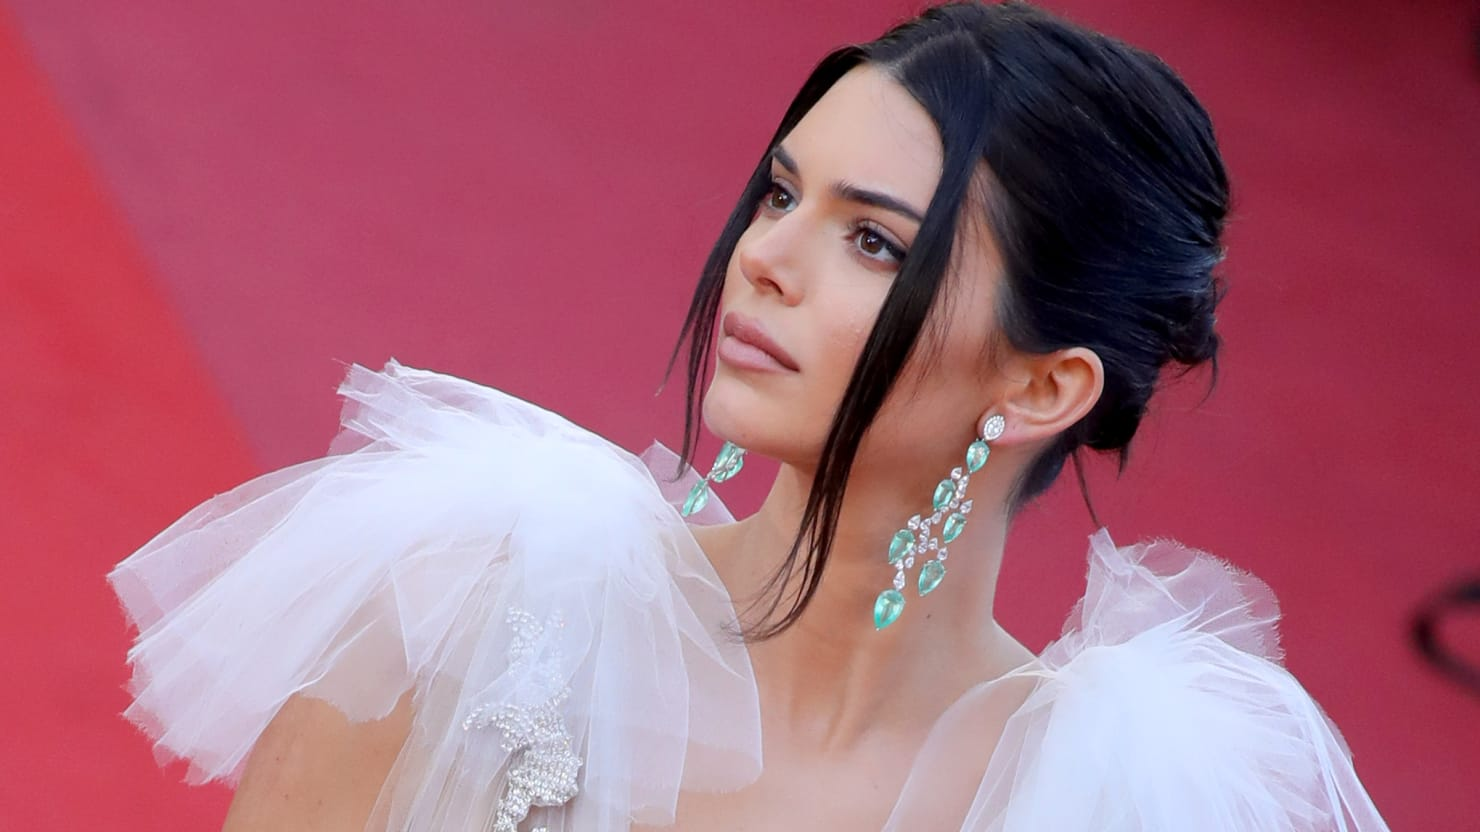 Nude Pictures of Kendall Jenner Riding a Horse And Running Along a Beach Leak Online